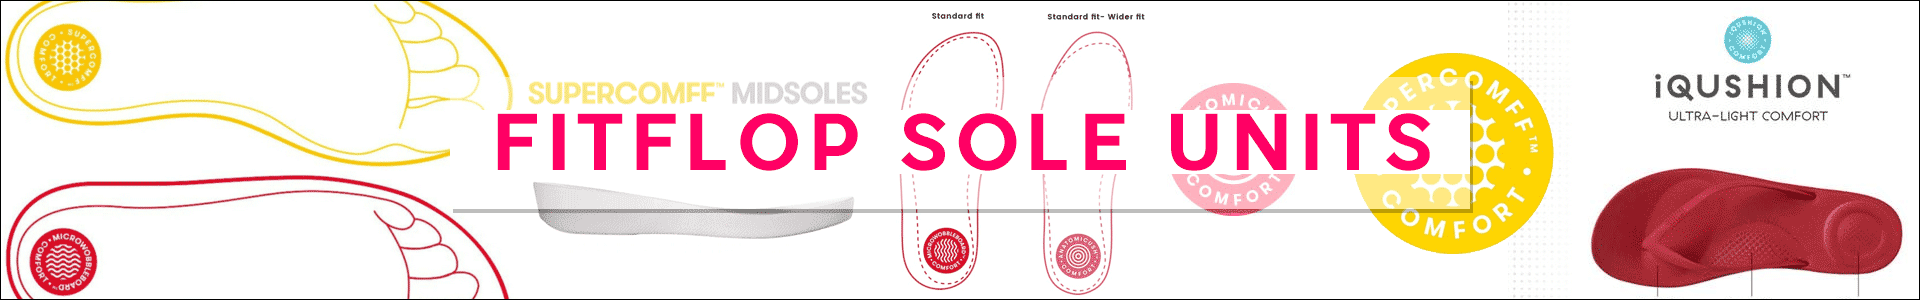 FitFlops Sole Units